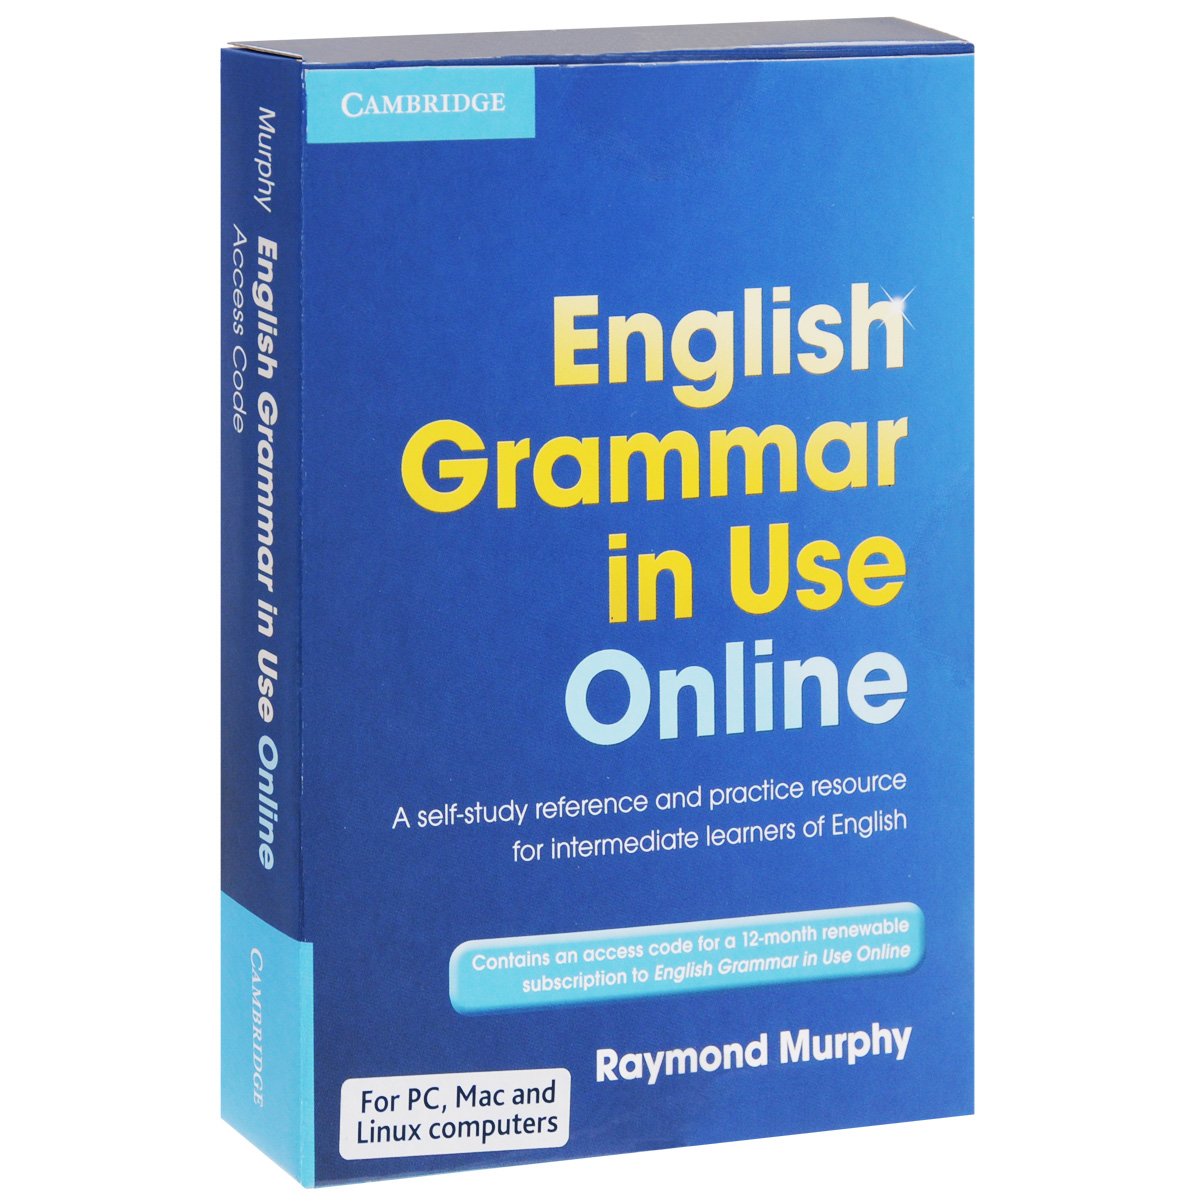 Access Code Card: English Grammar in Use Online: Access Code: A Self-Study Reference And Practice Resource for Intermediate Learners of English the keys for english grammar reference and practice and english grammar test file ключи